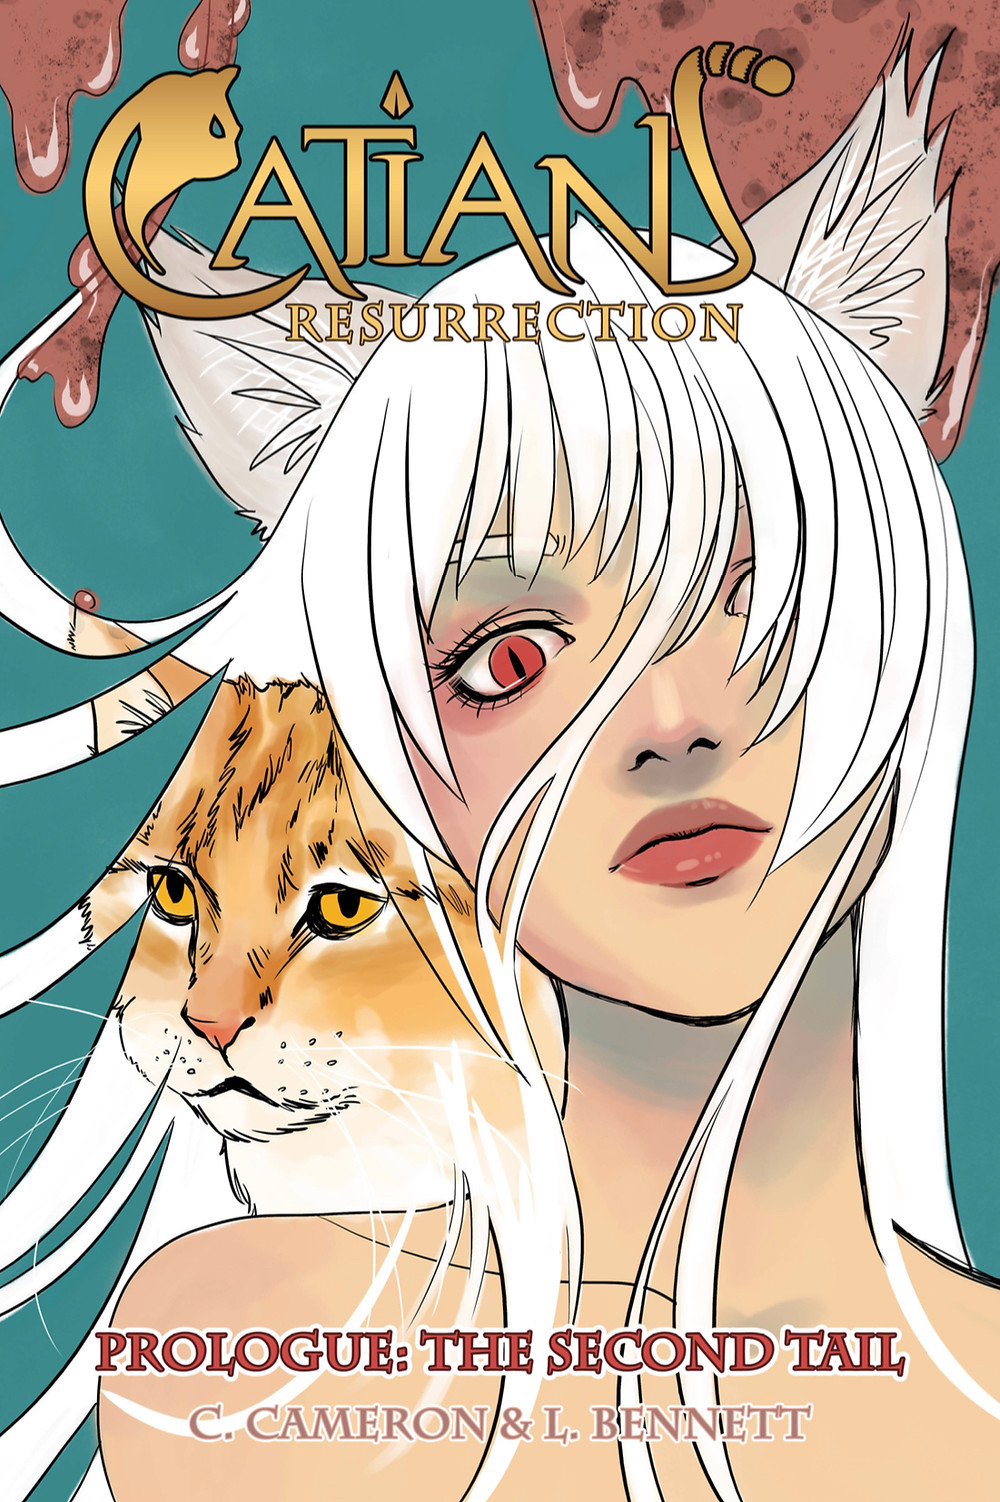 Catians: Resurrection, issue #1, cover, self-published, Cameron/Bennett